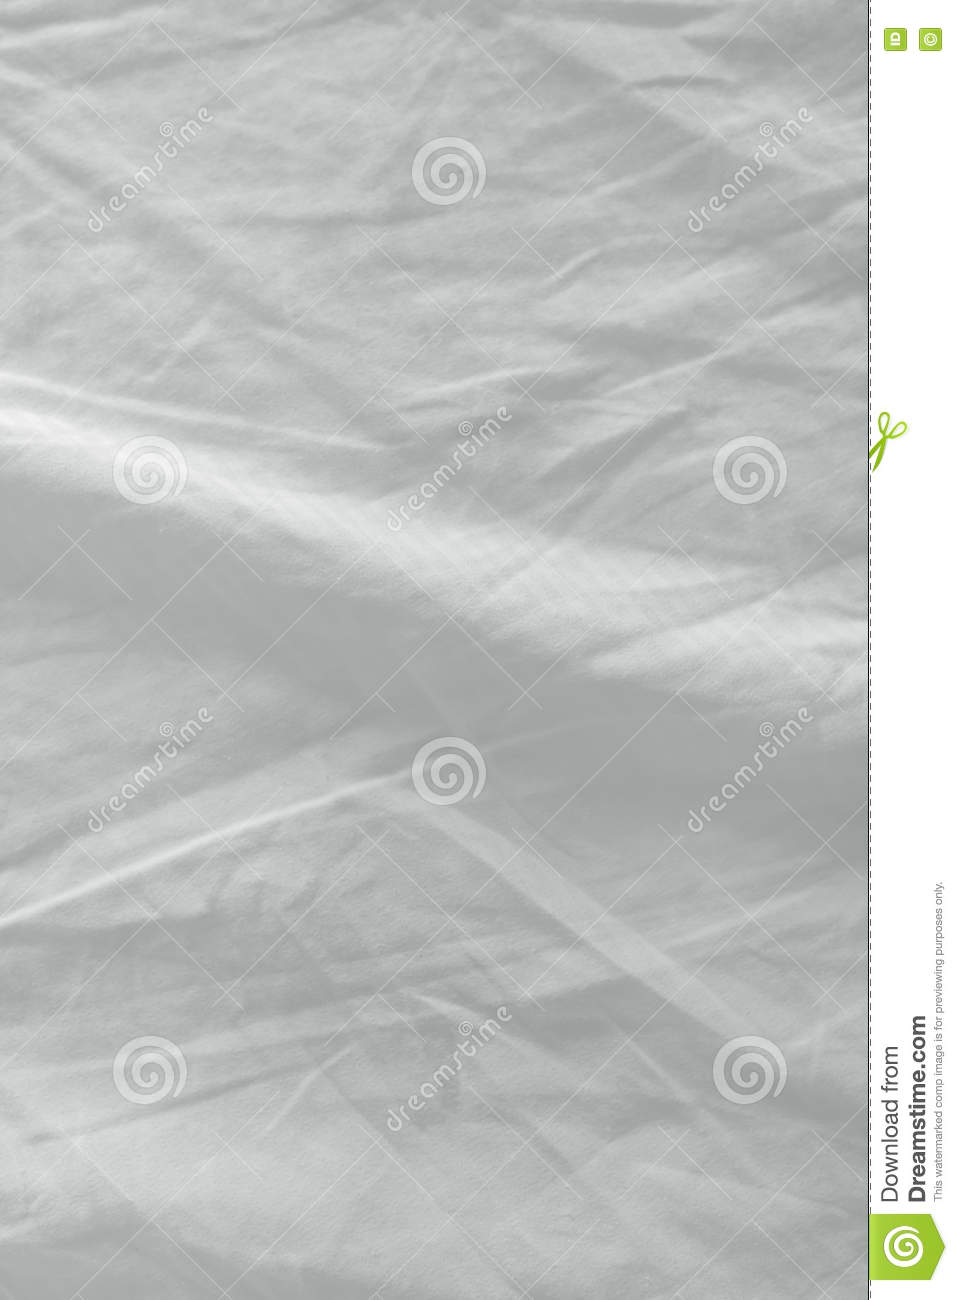 White bed sheets texture - Used Bed Sheets Texture